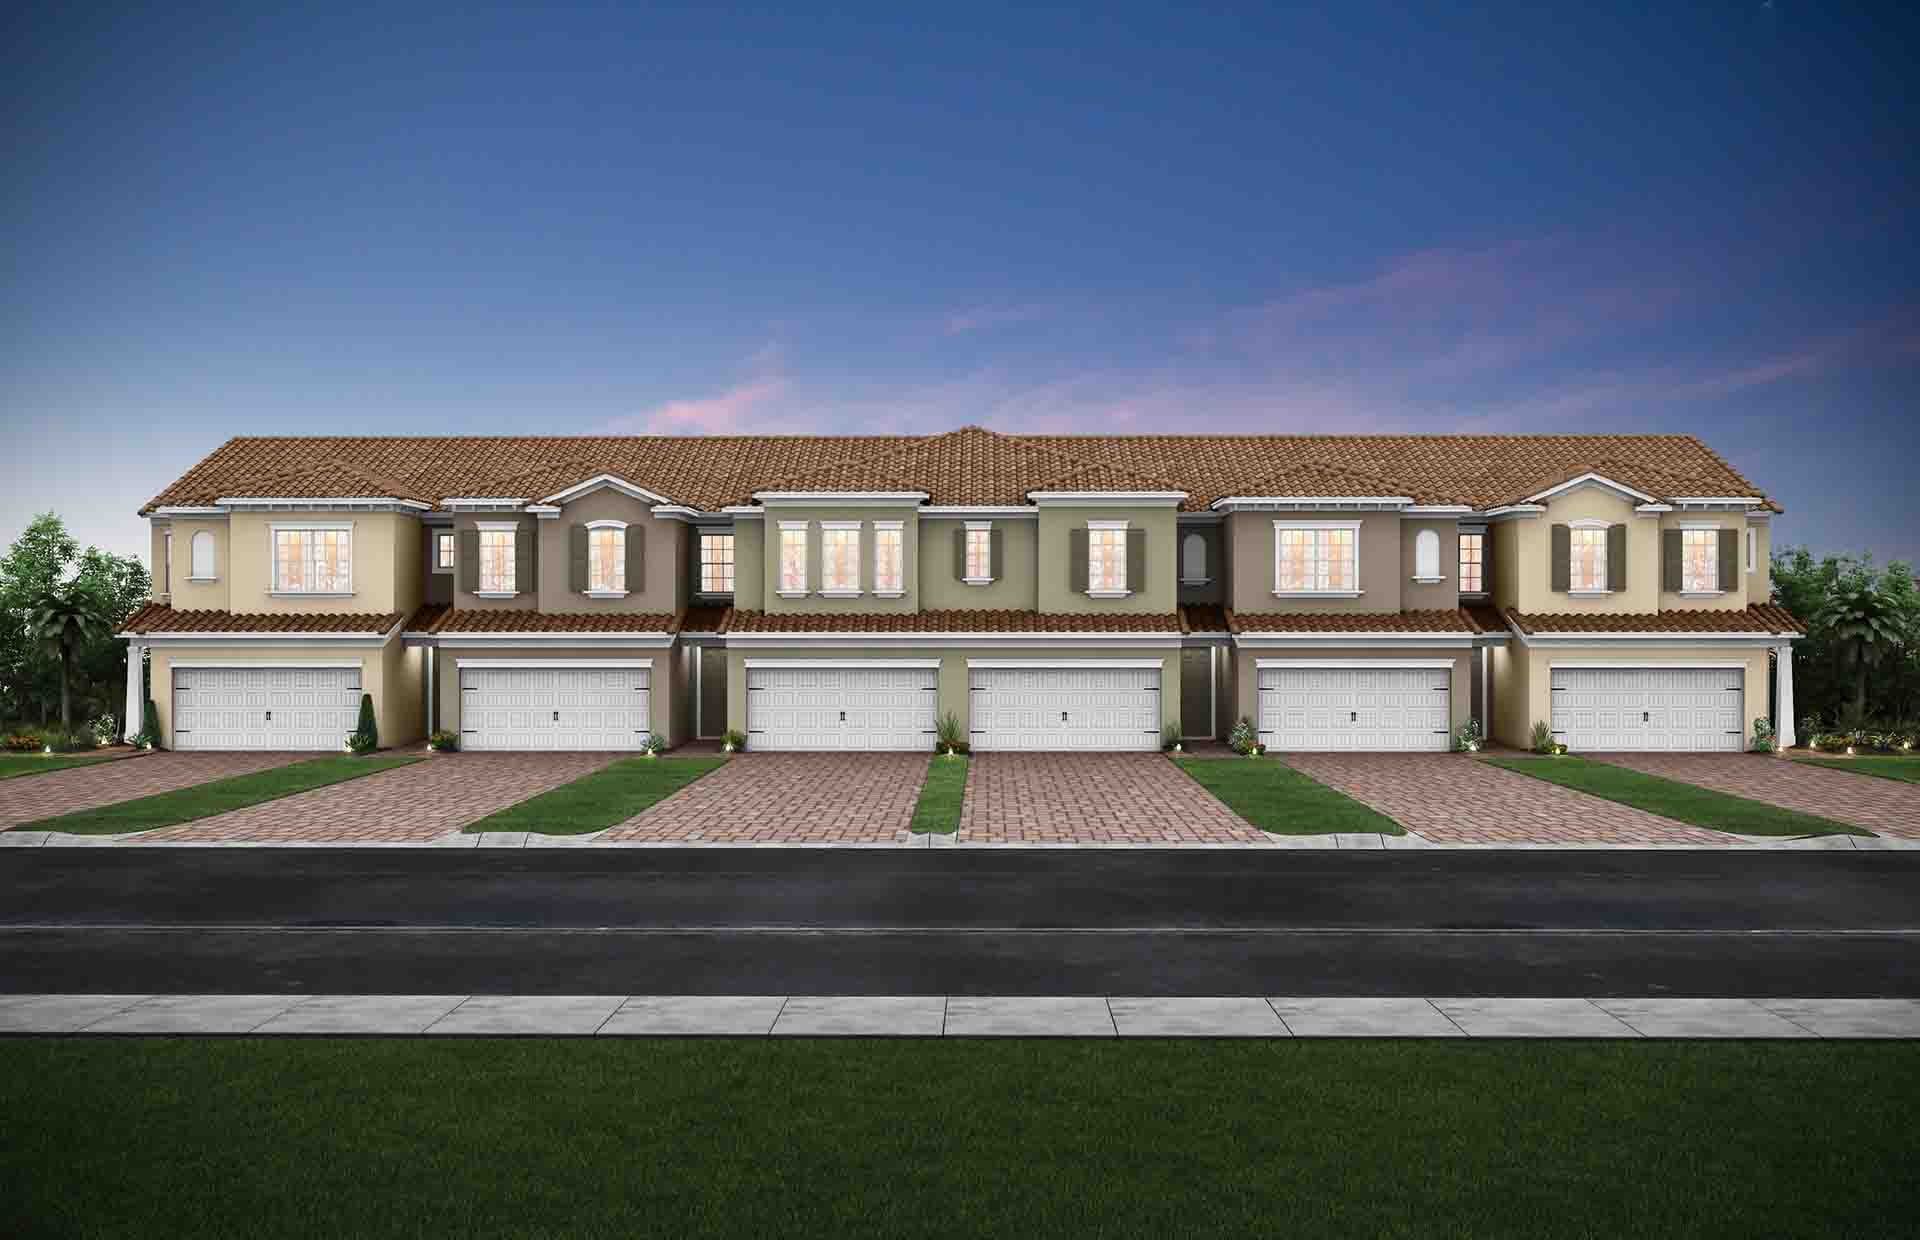 Pulte Homes Purchases 42 New Luxury Townhome Lots at Hammock Cove